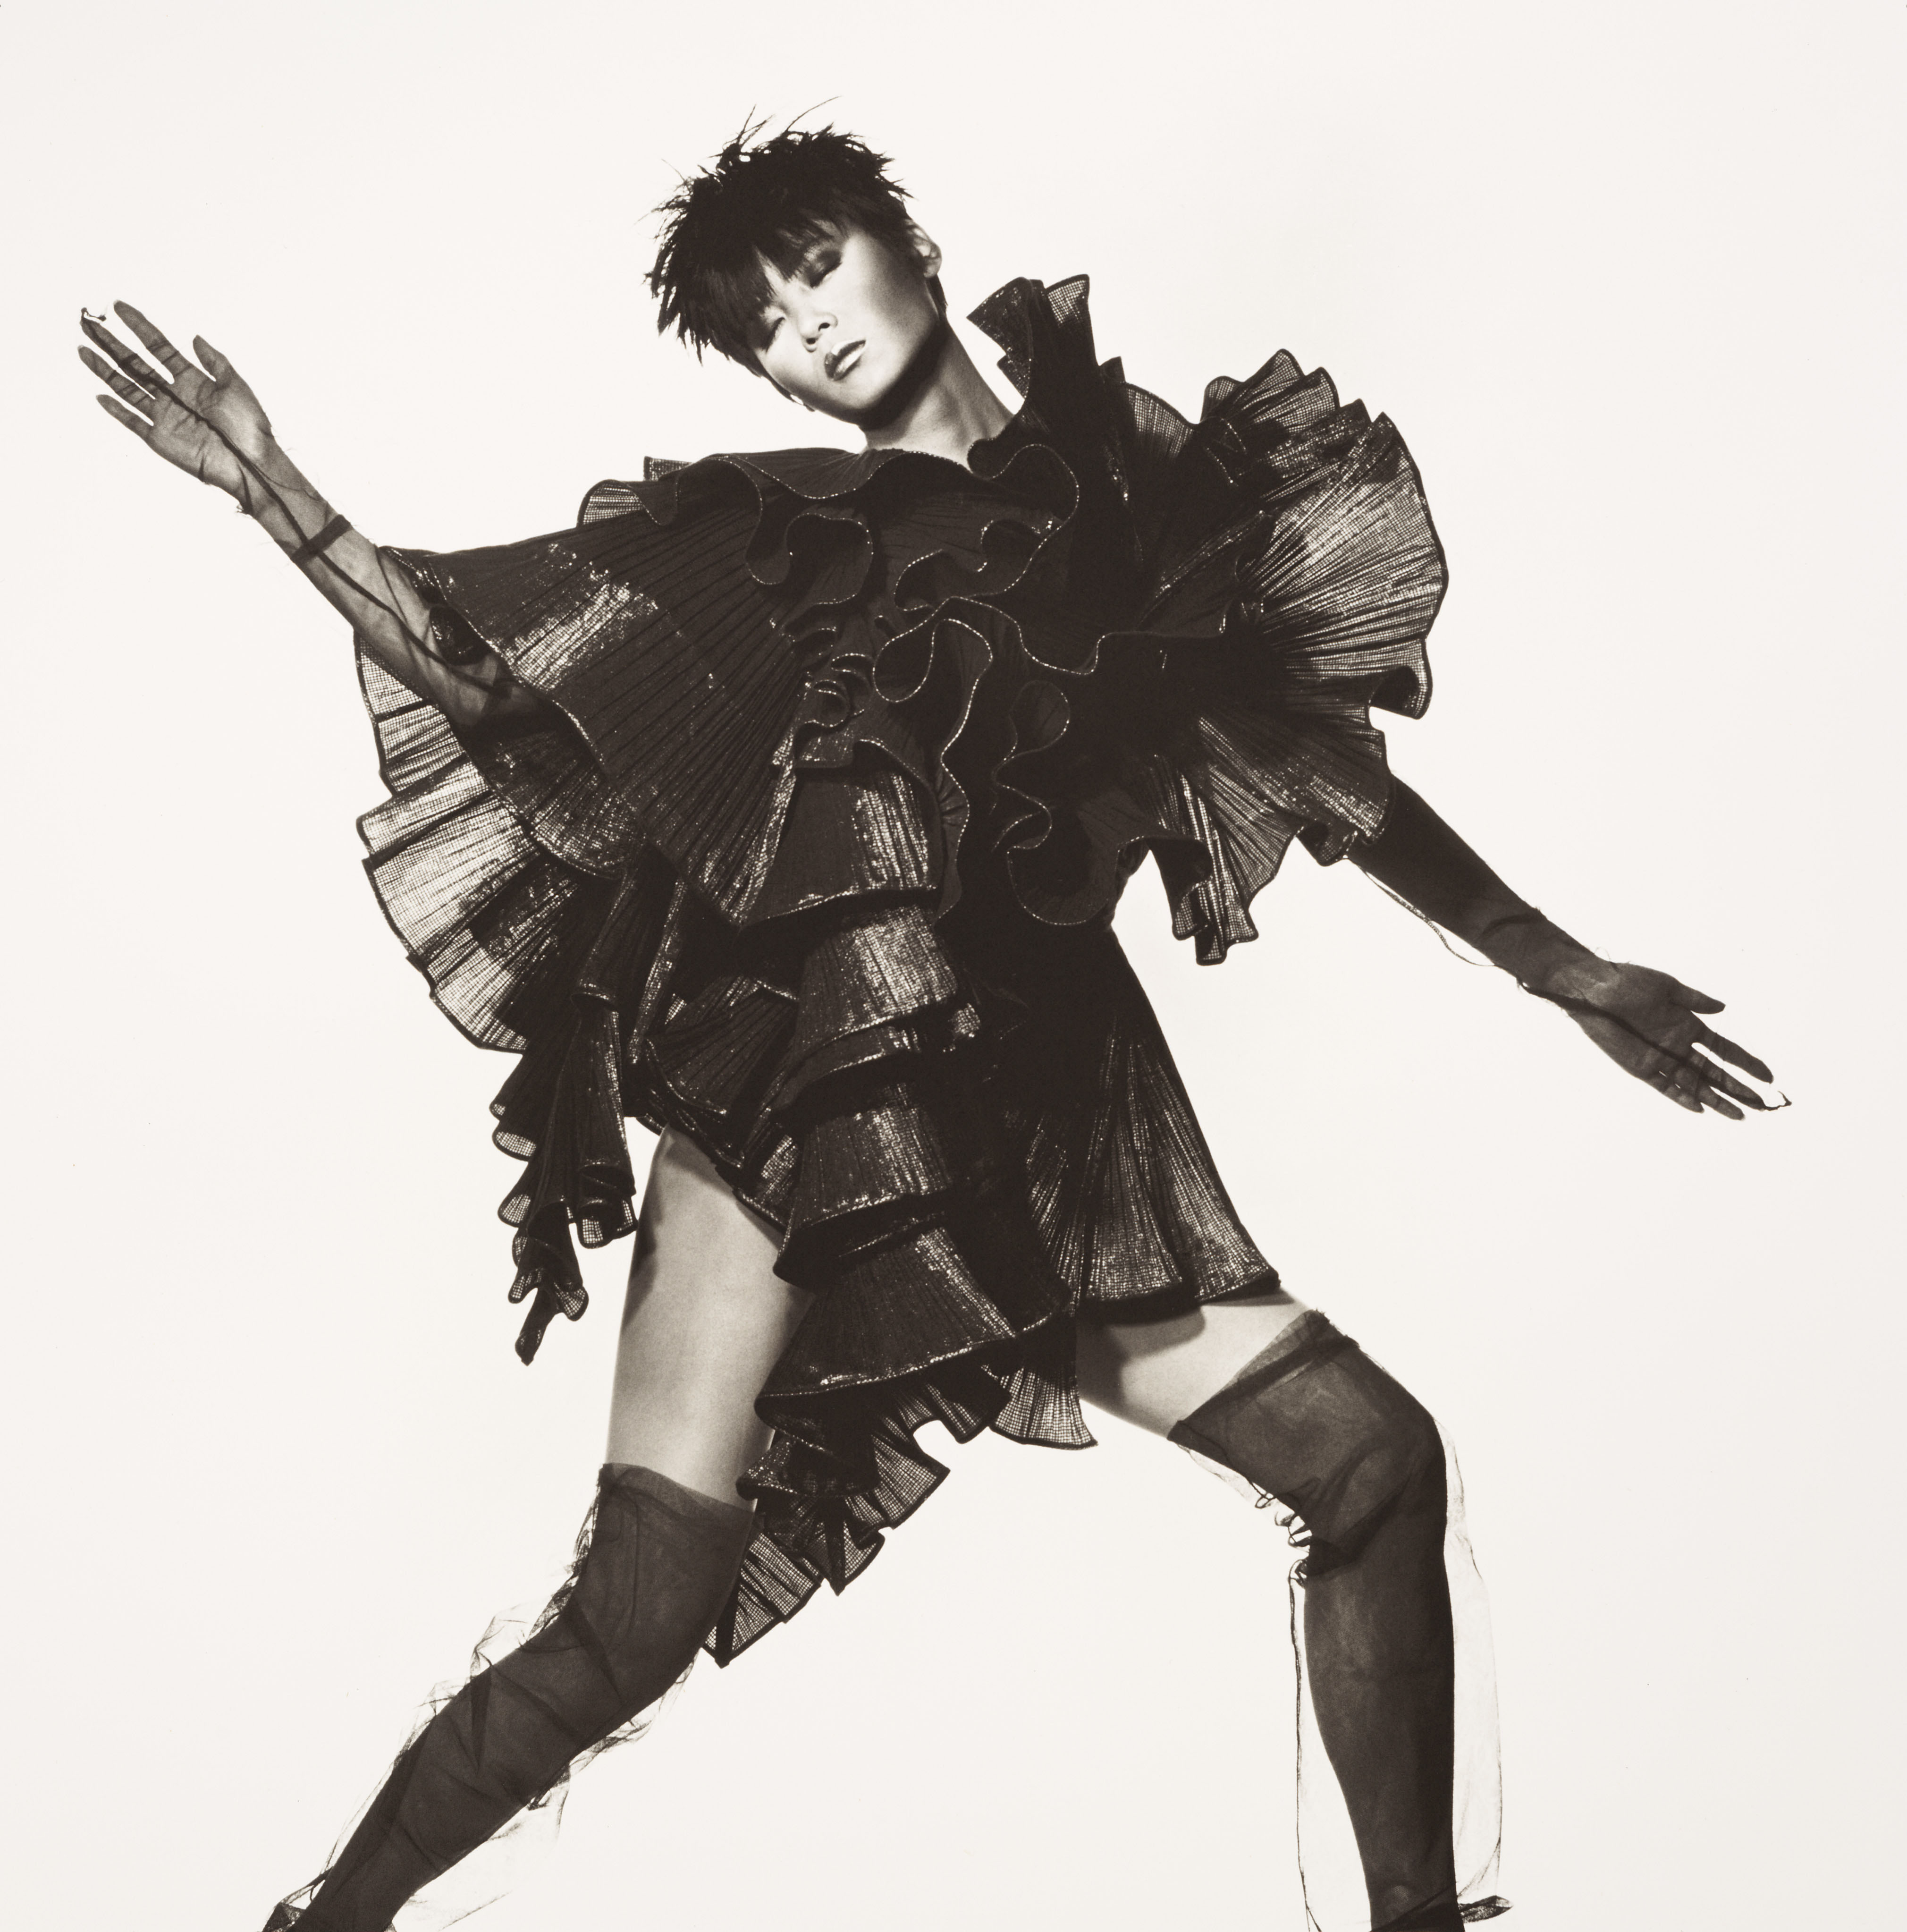 Irving Penn. Issey Miyake Seaweed Dress, New York, 1994; platinum/palladium print. | © THE IRVING PENN FOUNDATION